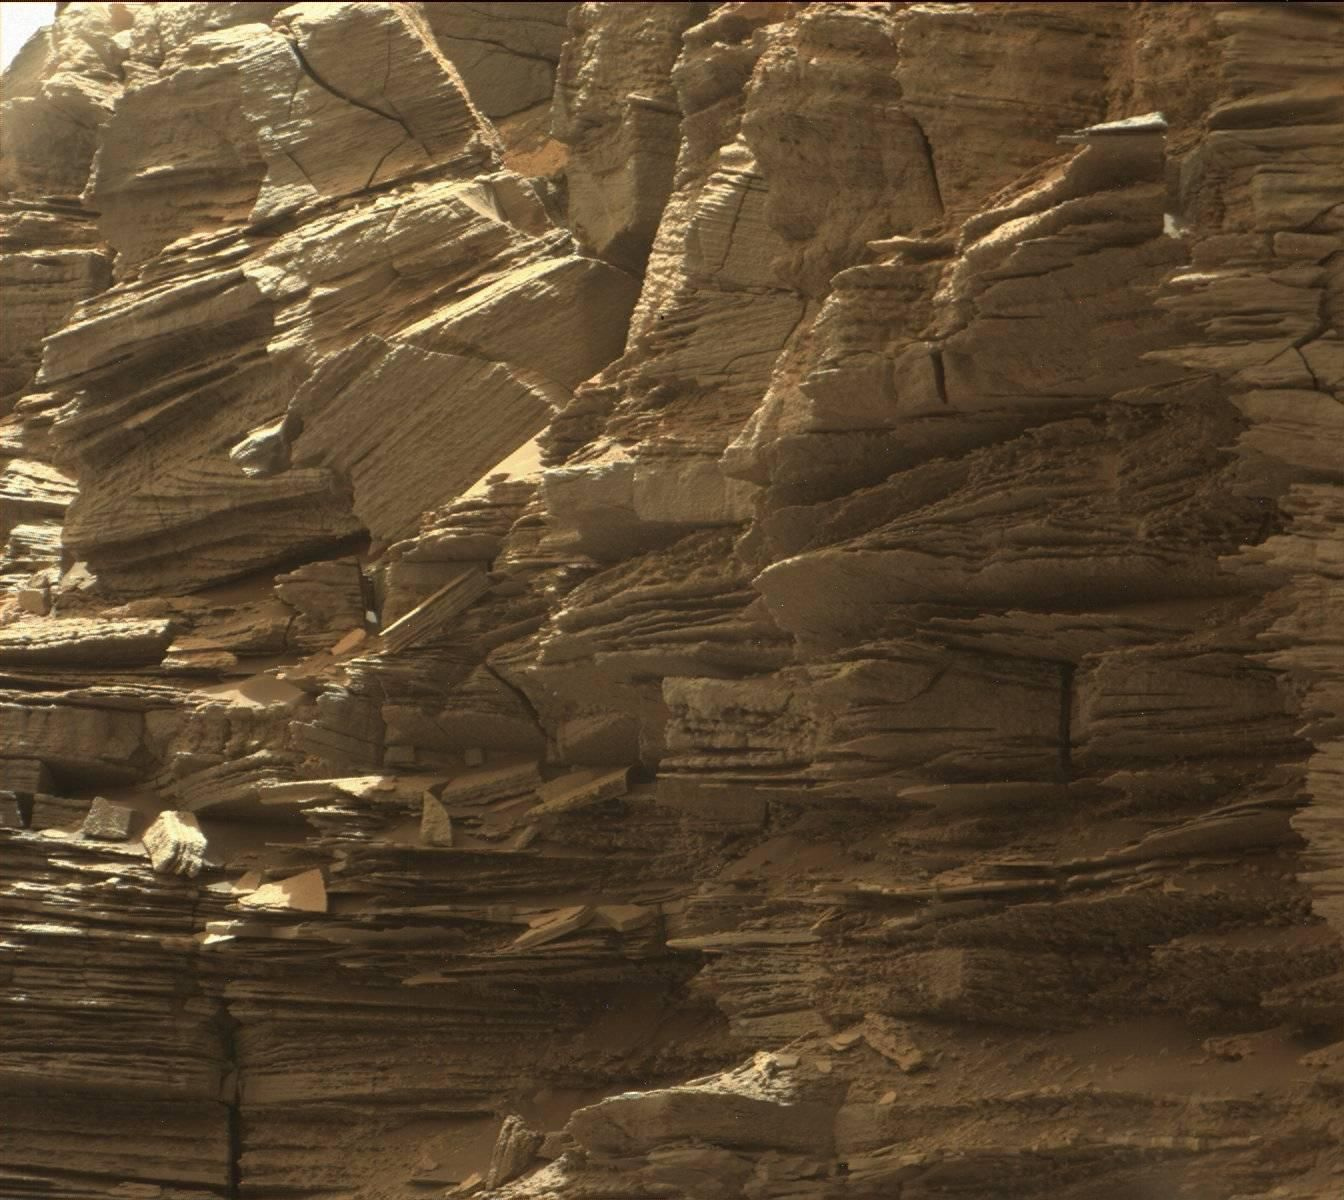 """This view from the Mast Camera (Mastcam) in NASA's Curiosity Mars rover shows finely layered rocks within the """"Murray Buttes"""" region on lower Mount Sharp.   Read more at: http://phys.org/news/2016-09-mars-rover-curiosity-views-spectacular.html#jCp"""